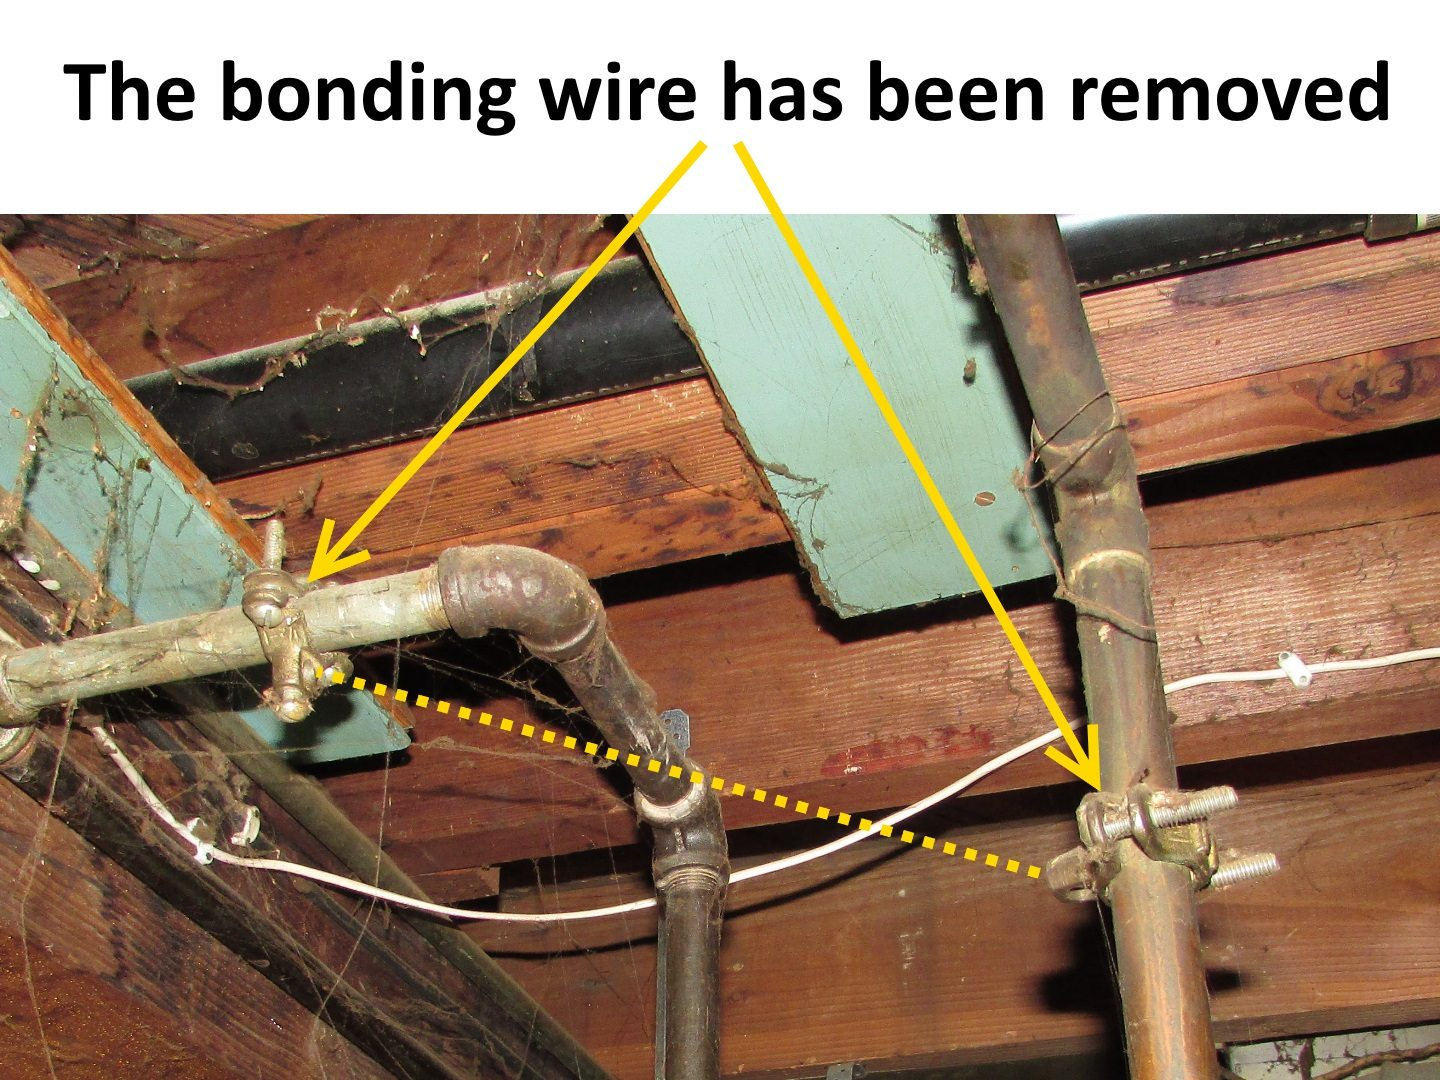 Bonding Gas Piping Structure Tech Home Inspections Running Electrical Wiring At So You Get What We Had Here Last Week I Have Pictured Below There Used To Be A Wire Connected Those Clamps But Someone Removed It